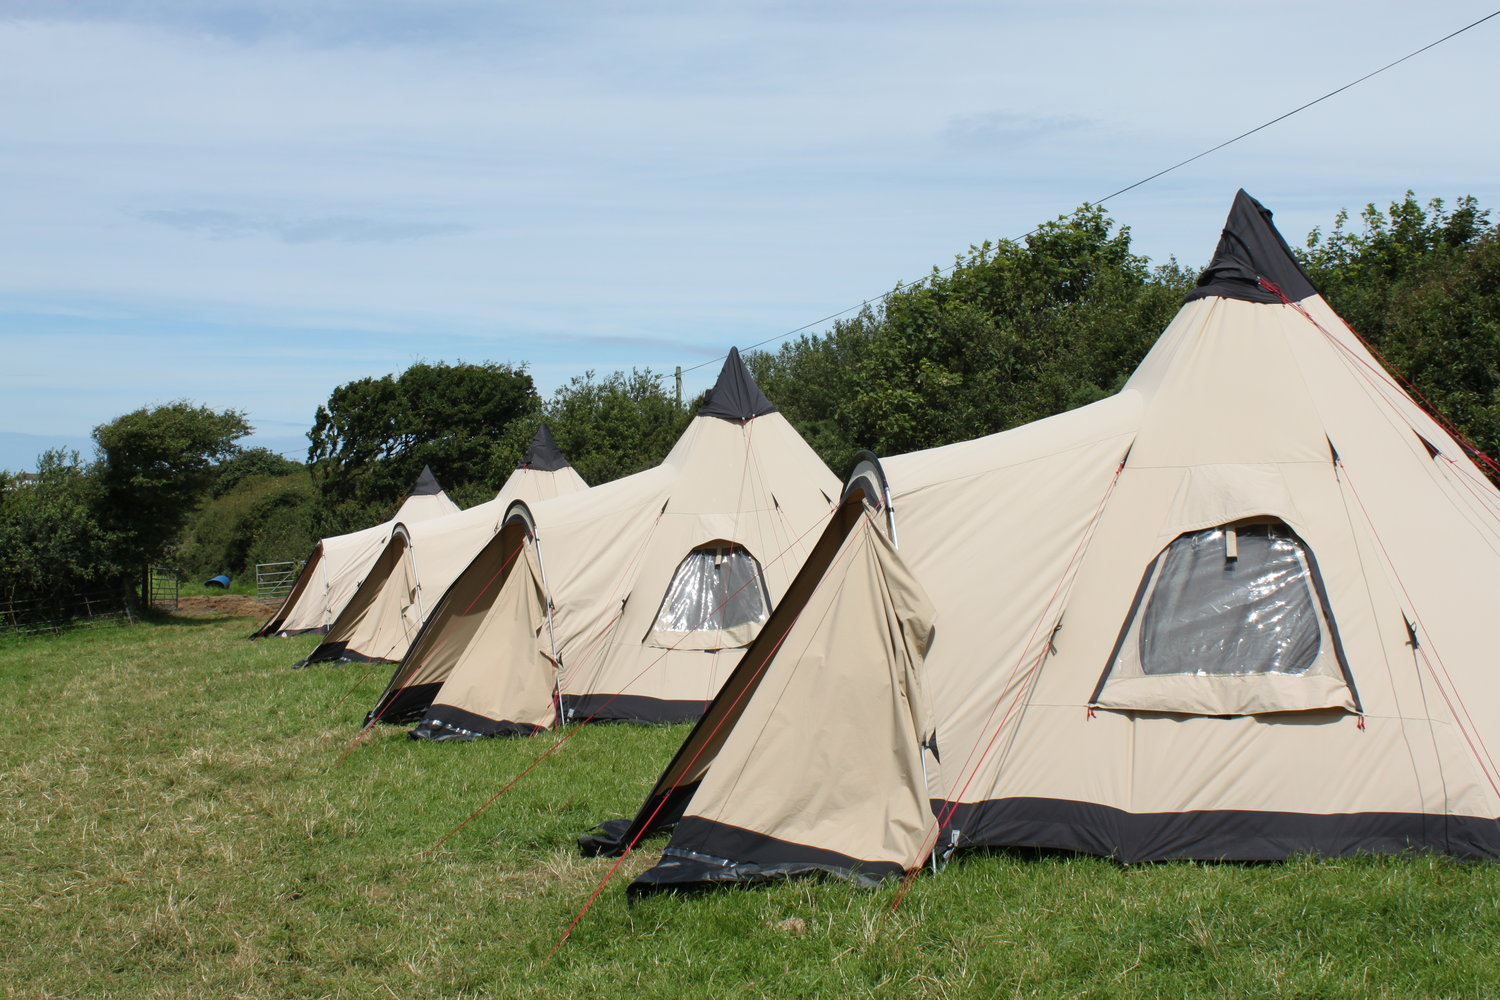 Coastal camping for stag and hen parties. Weekend activities camp site